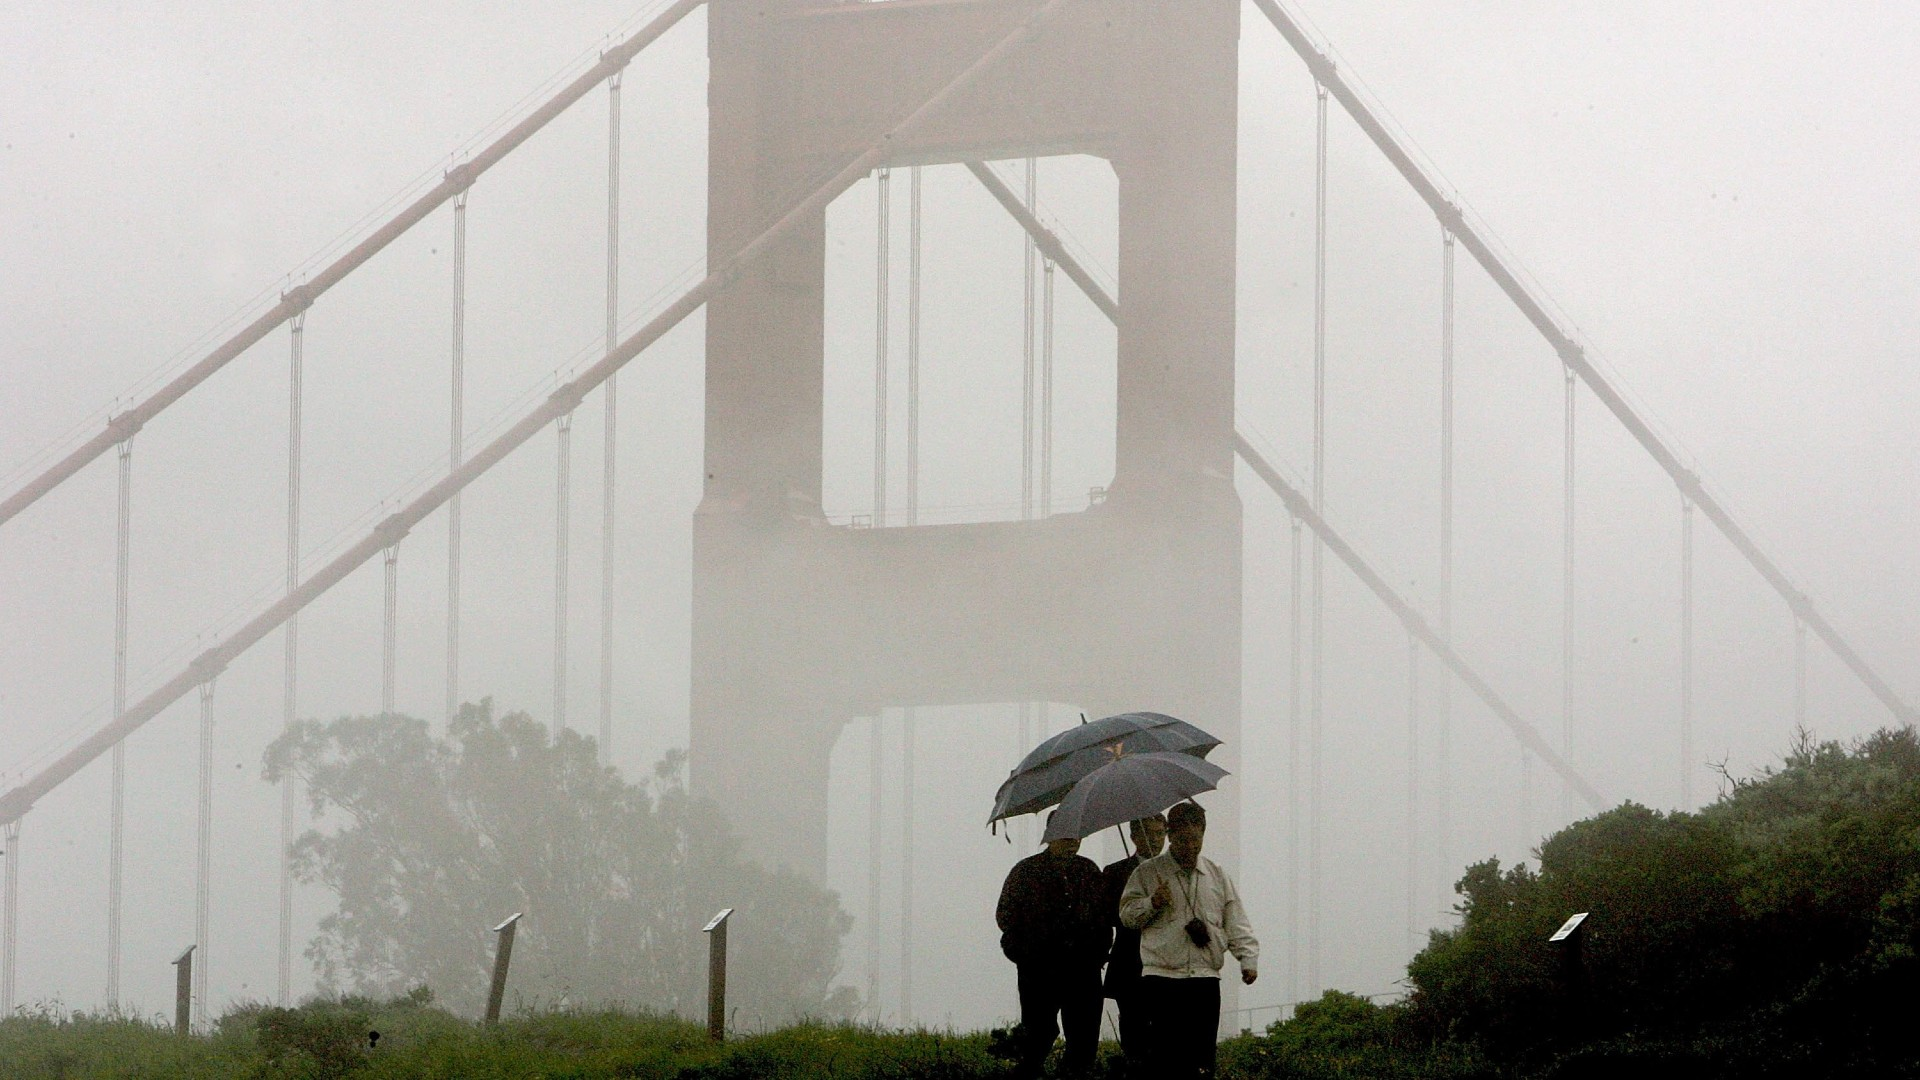 A group of men walk through the rain near the north tower of the Golden Gate Bridge April 12, 2006 in Sausalito. (Justin Sullivan/Getty Images)